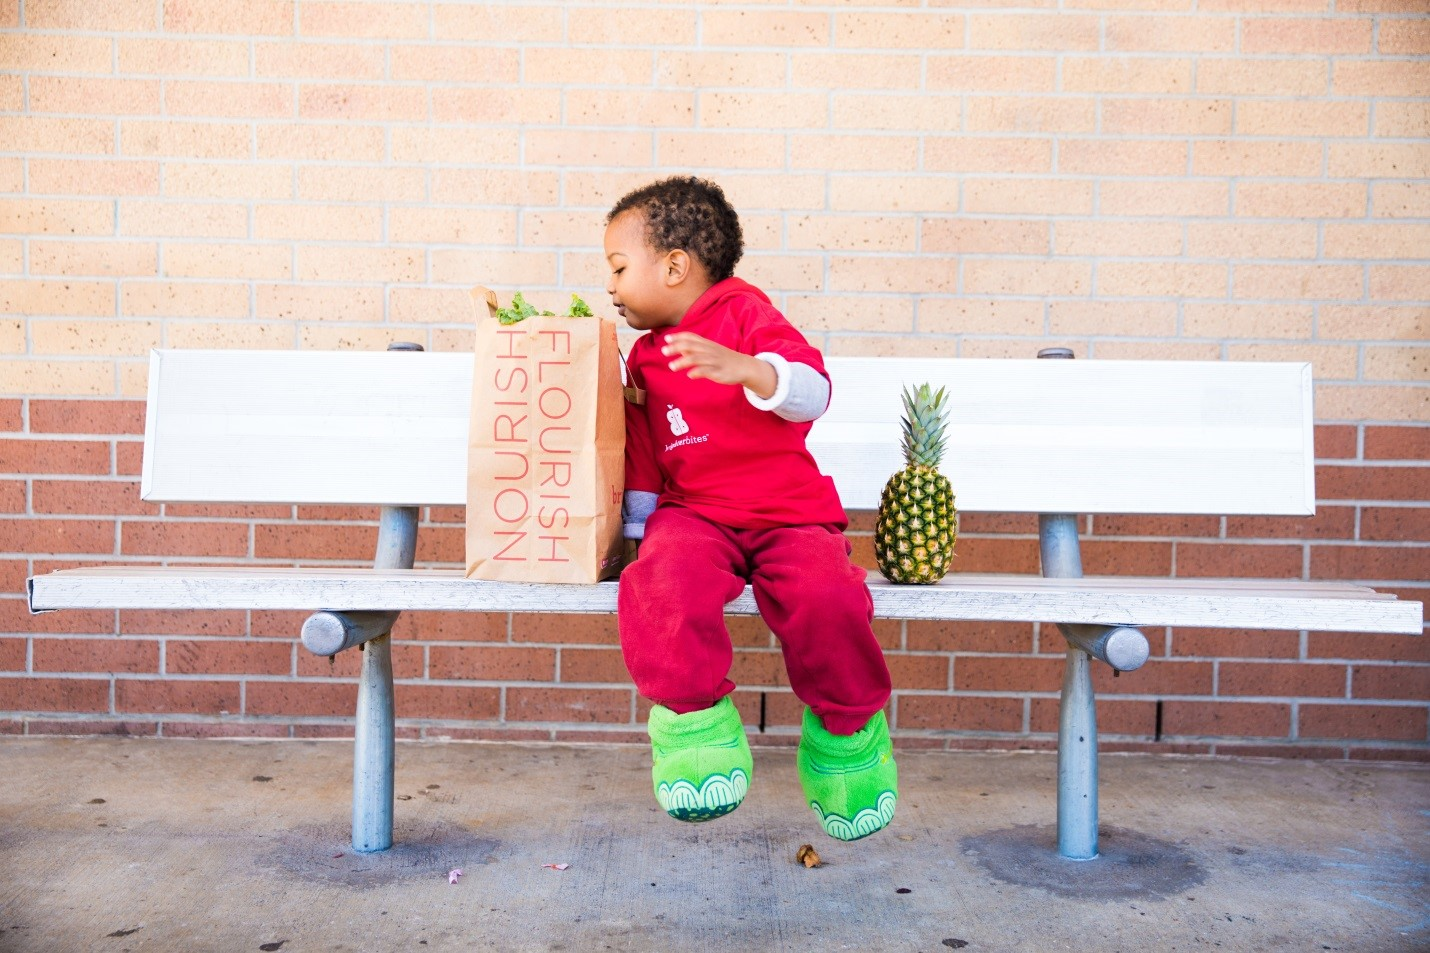 a boy sits on a bench with a bag of groceries